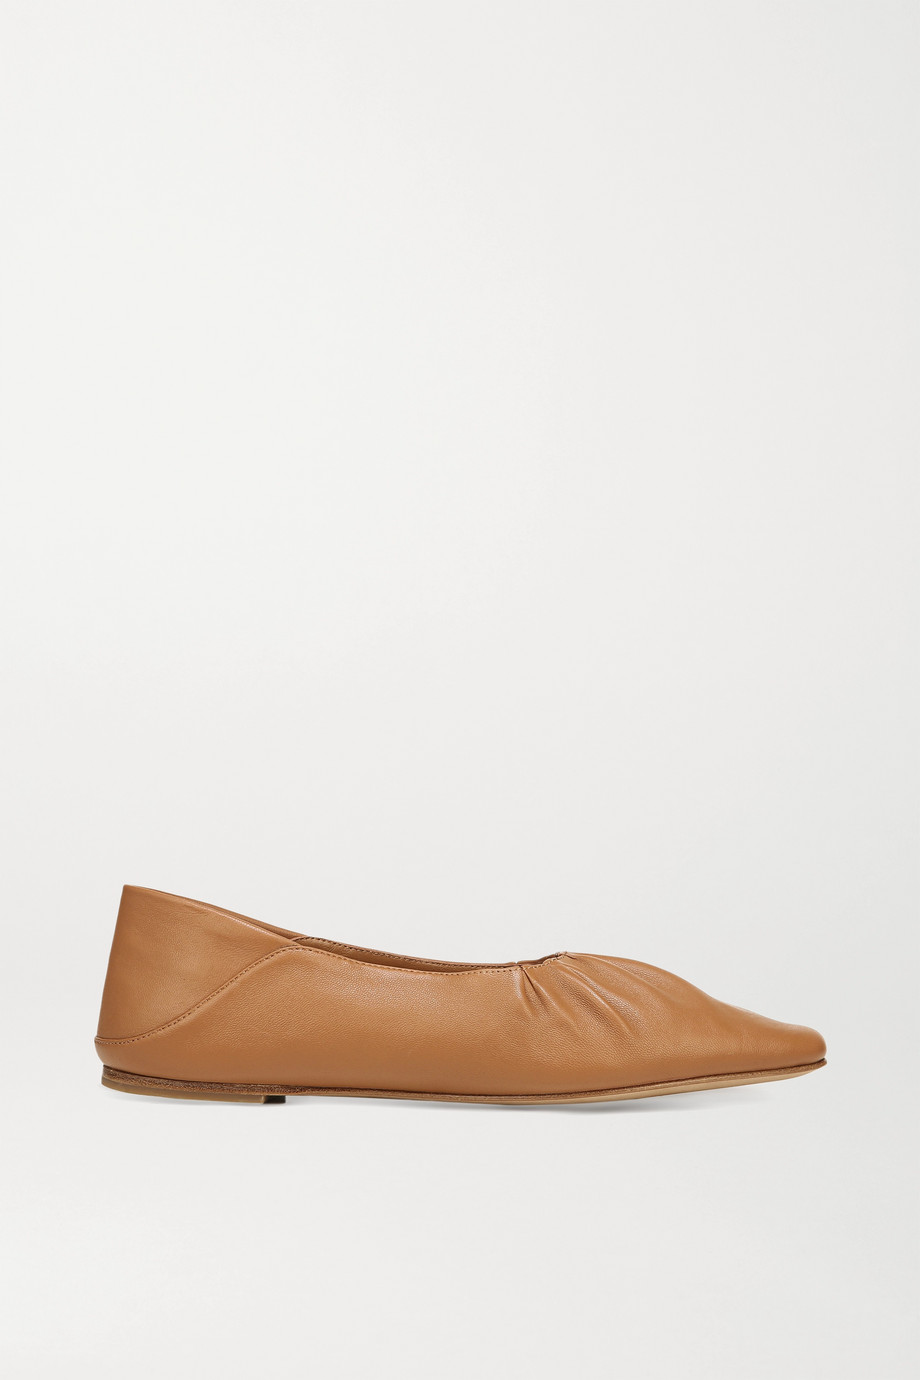 Vince Kali leather flats